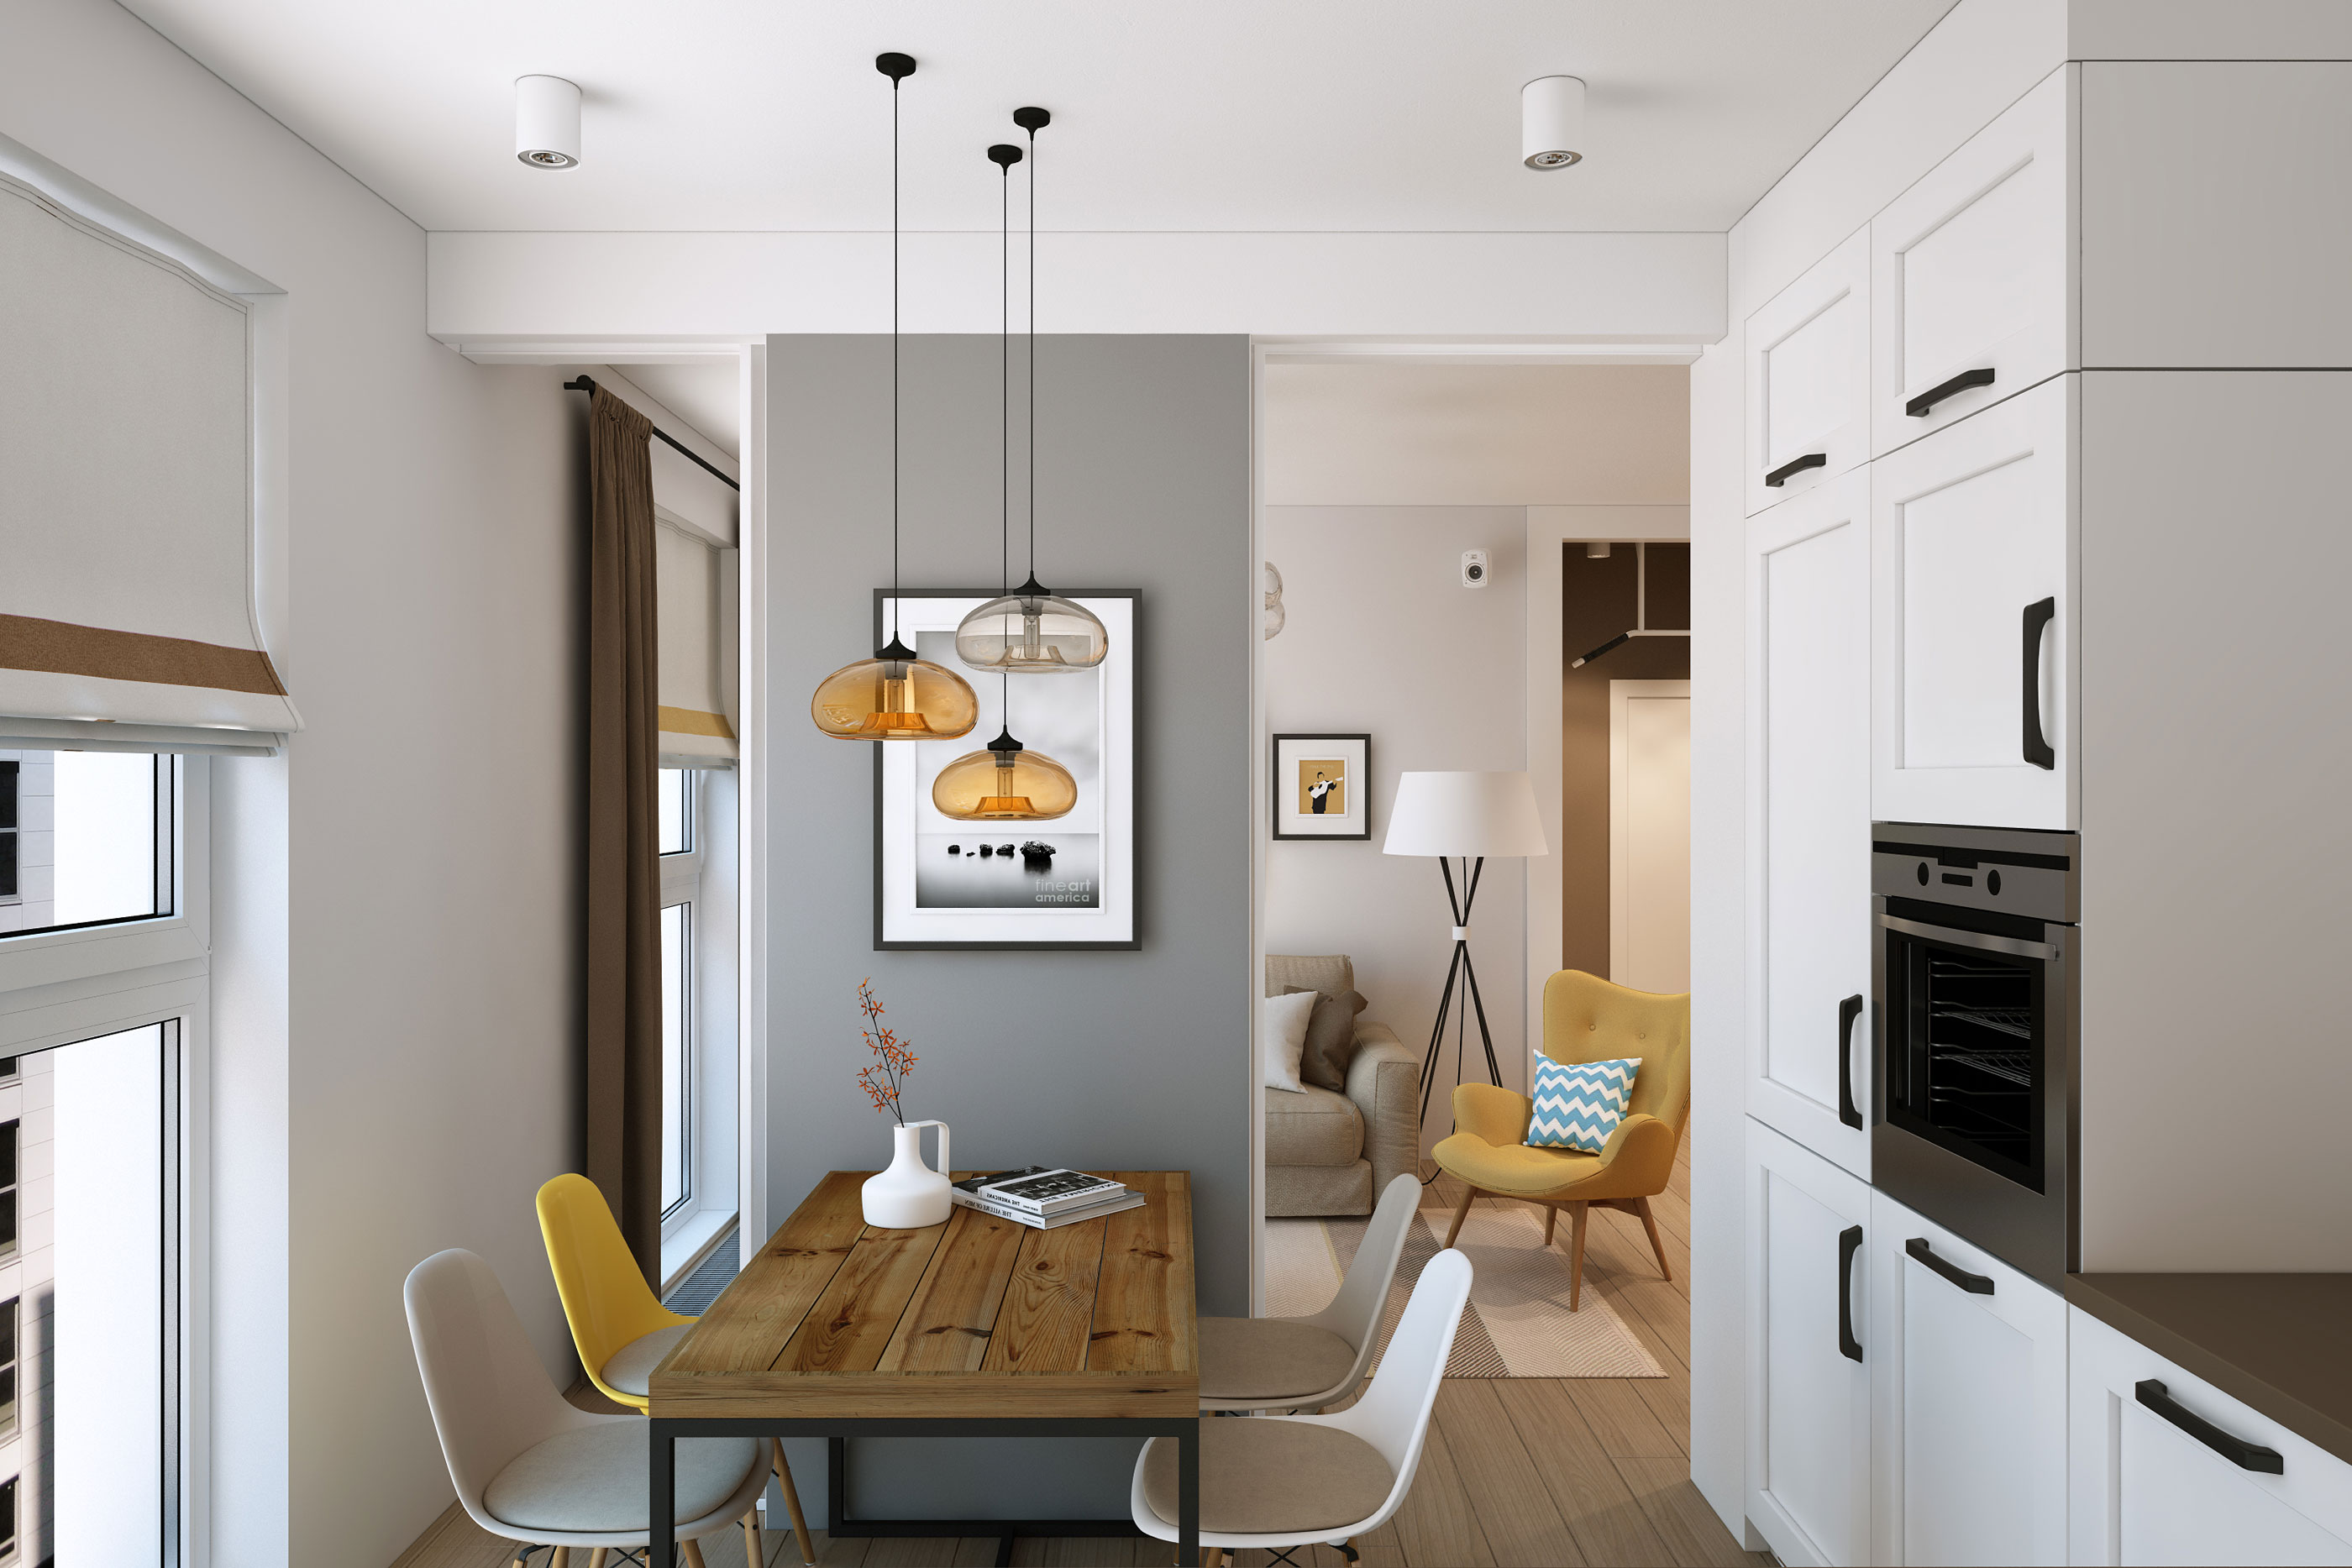 Geometrium Visualizes a Home for a Young Family in Moscow